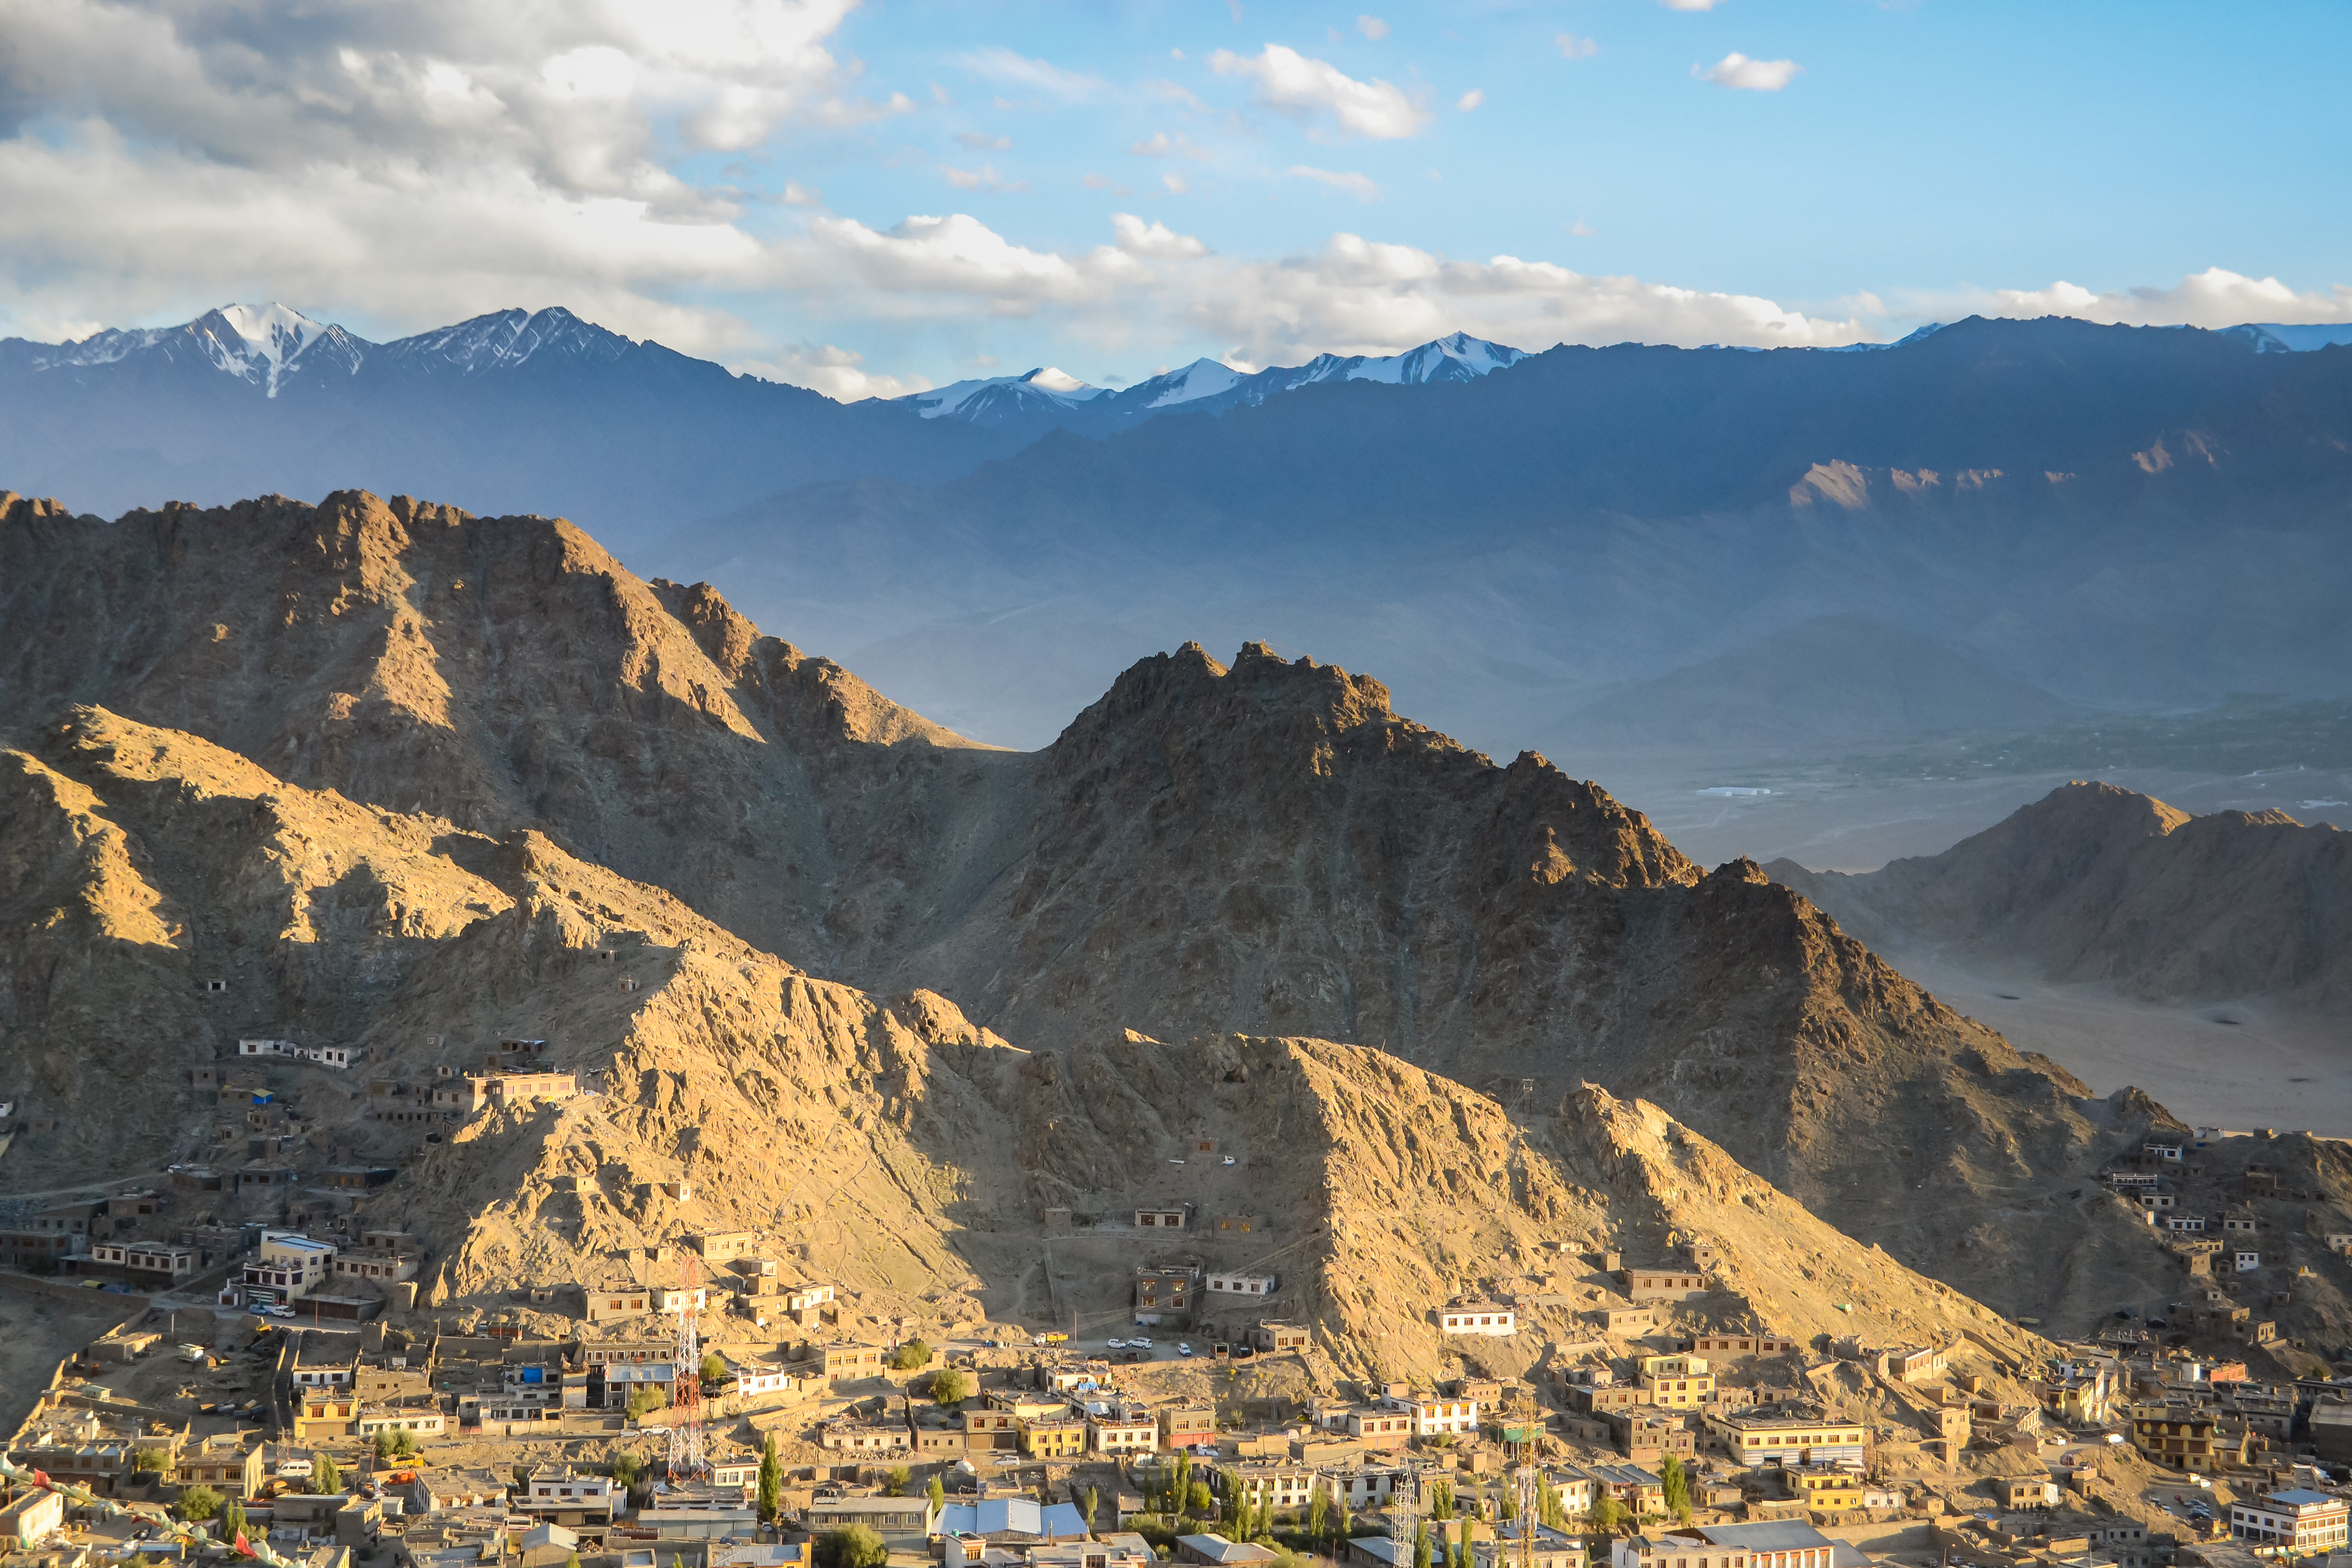 The Ladki City of Leh nestled in a remote valley of the Indian Himalaya.